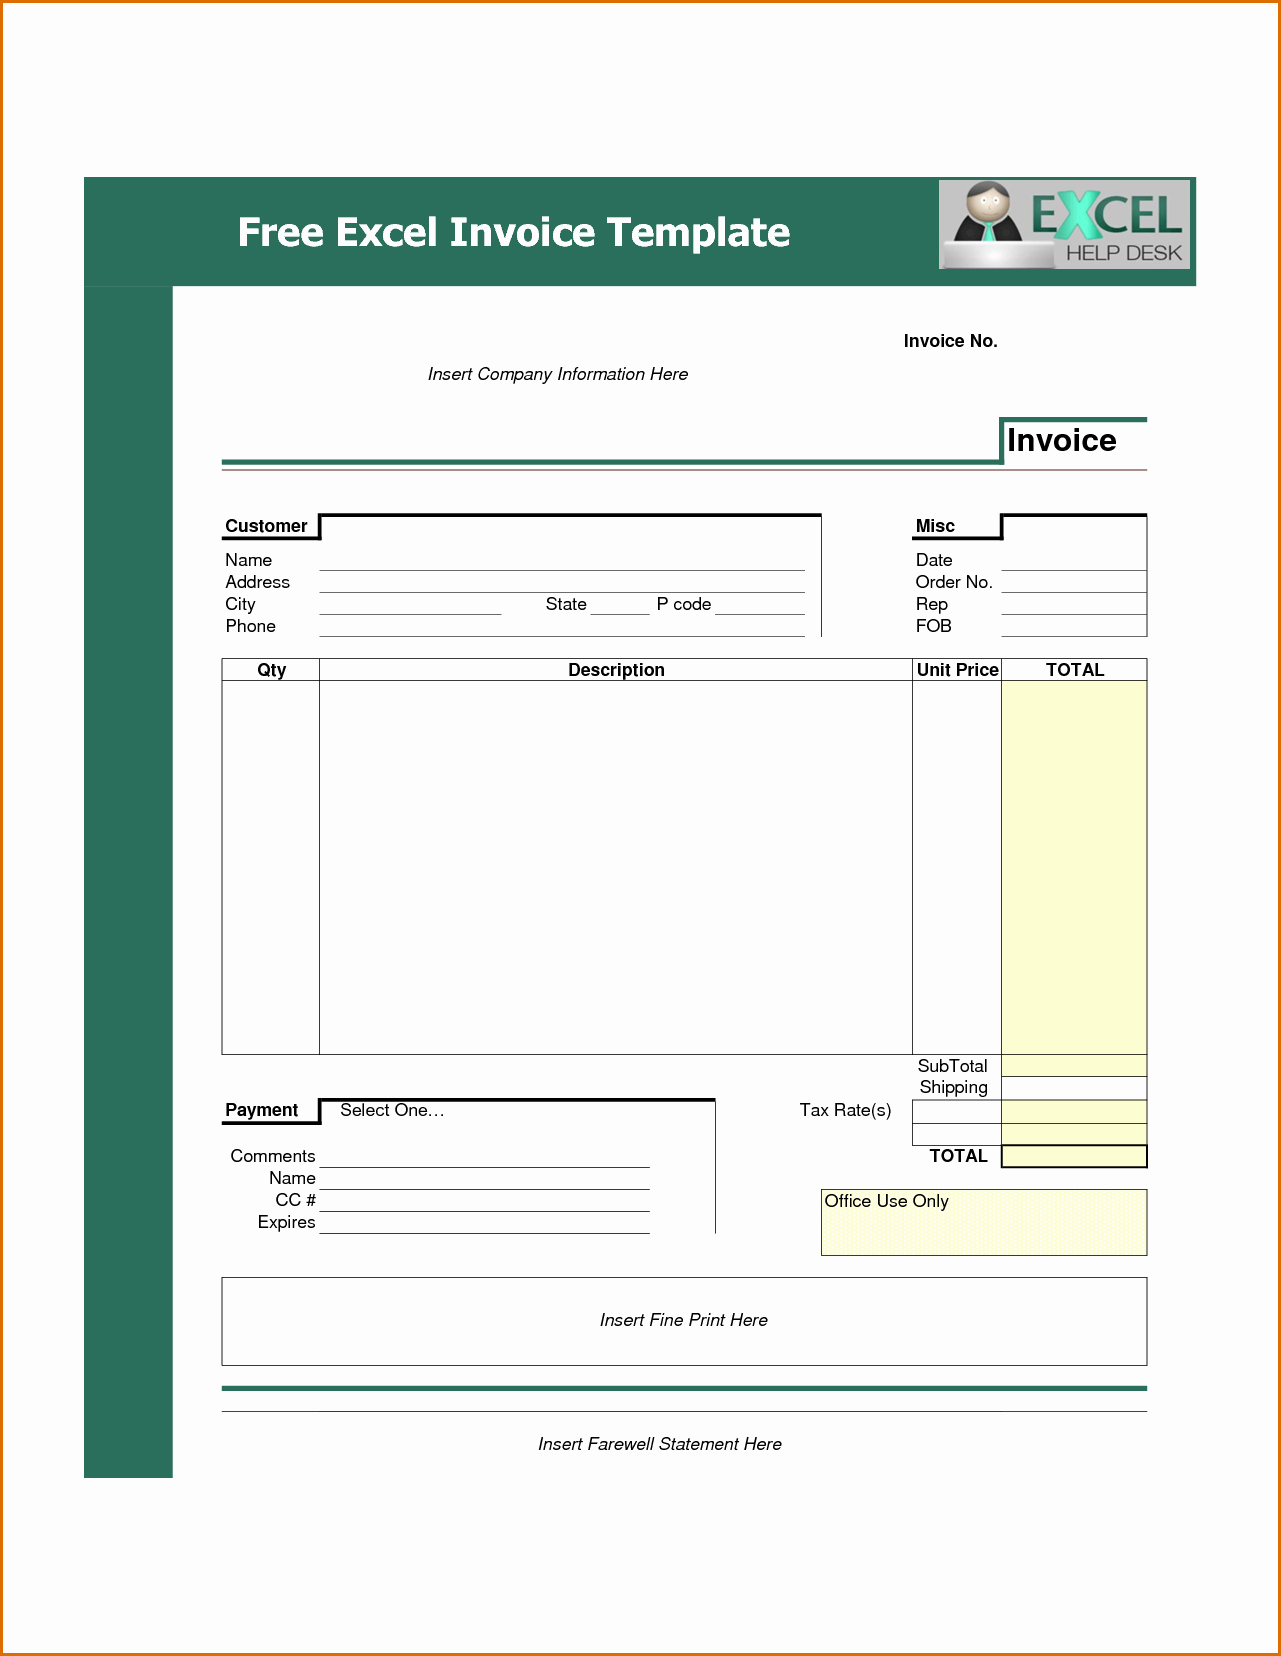 Free Excel Invoice Template Lovely 11 Able Invoice Template